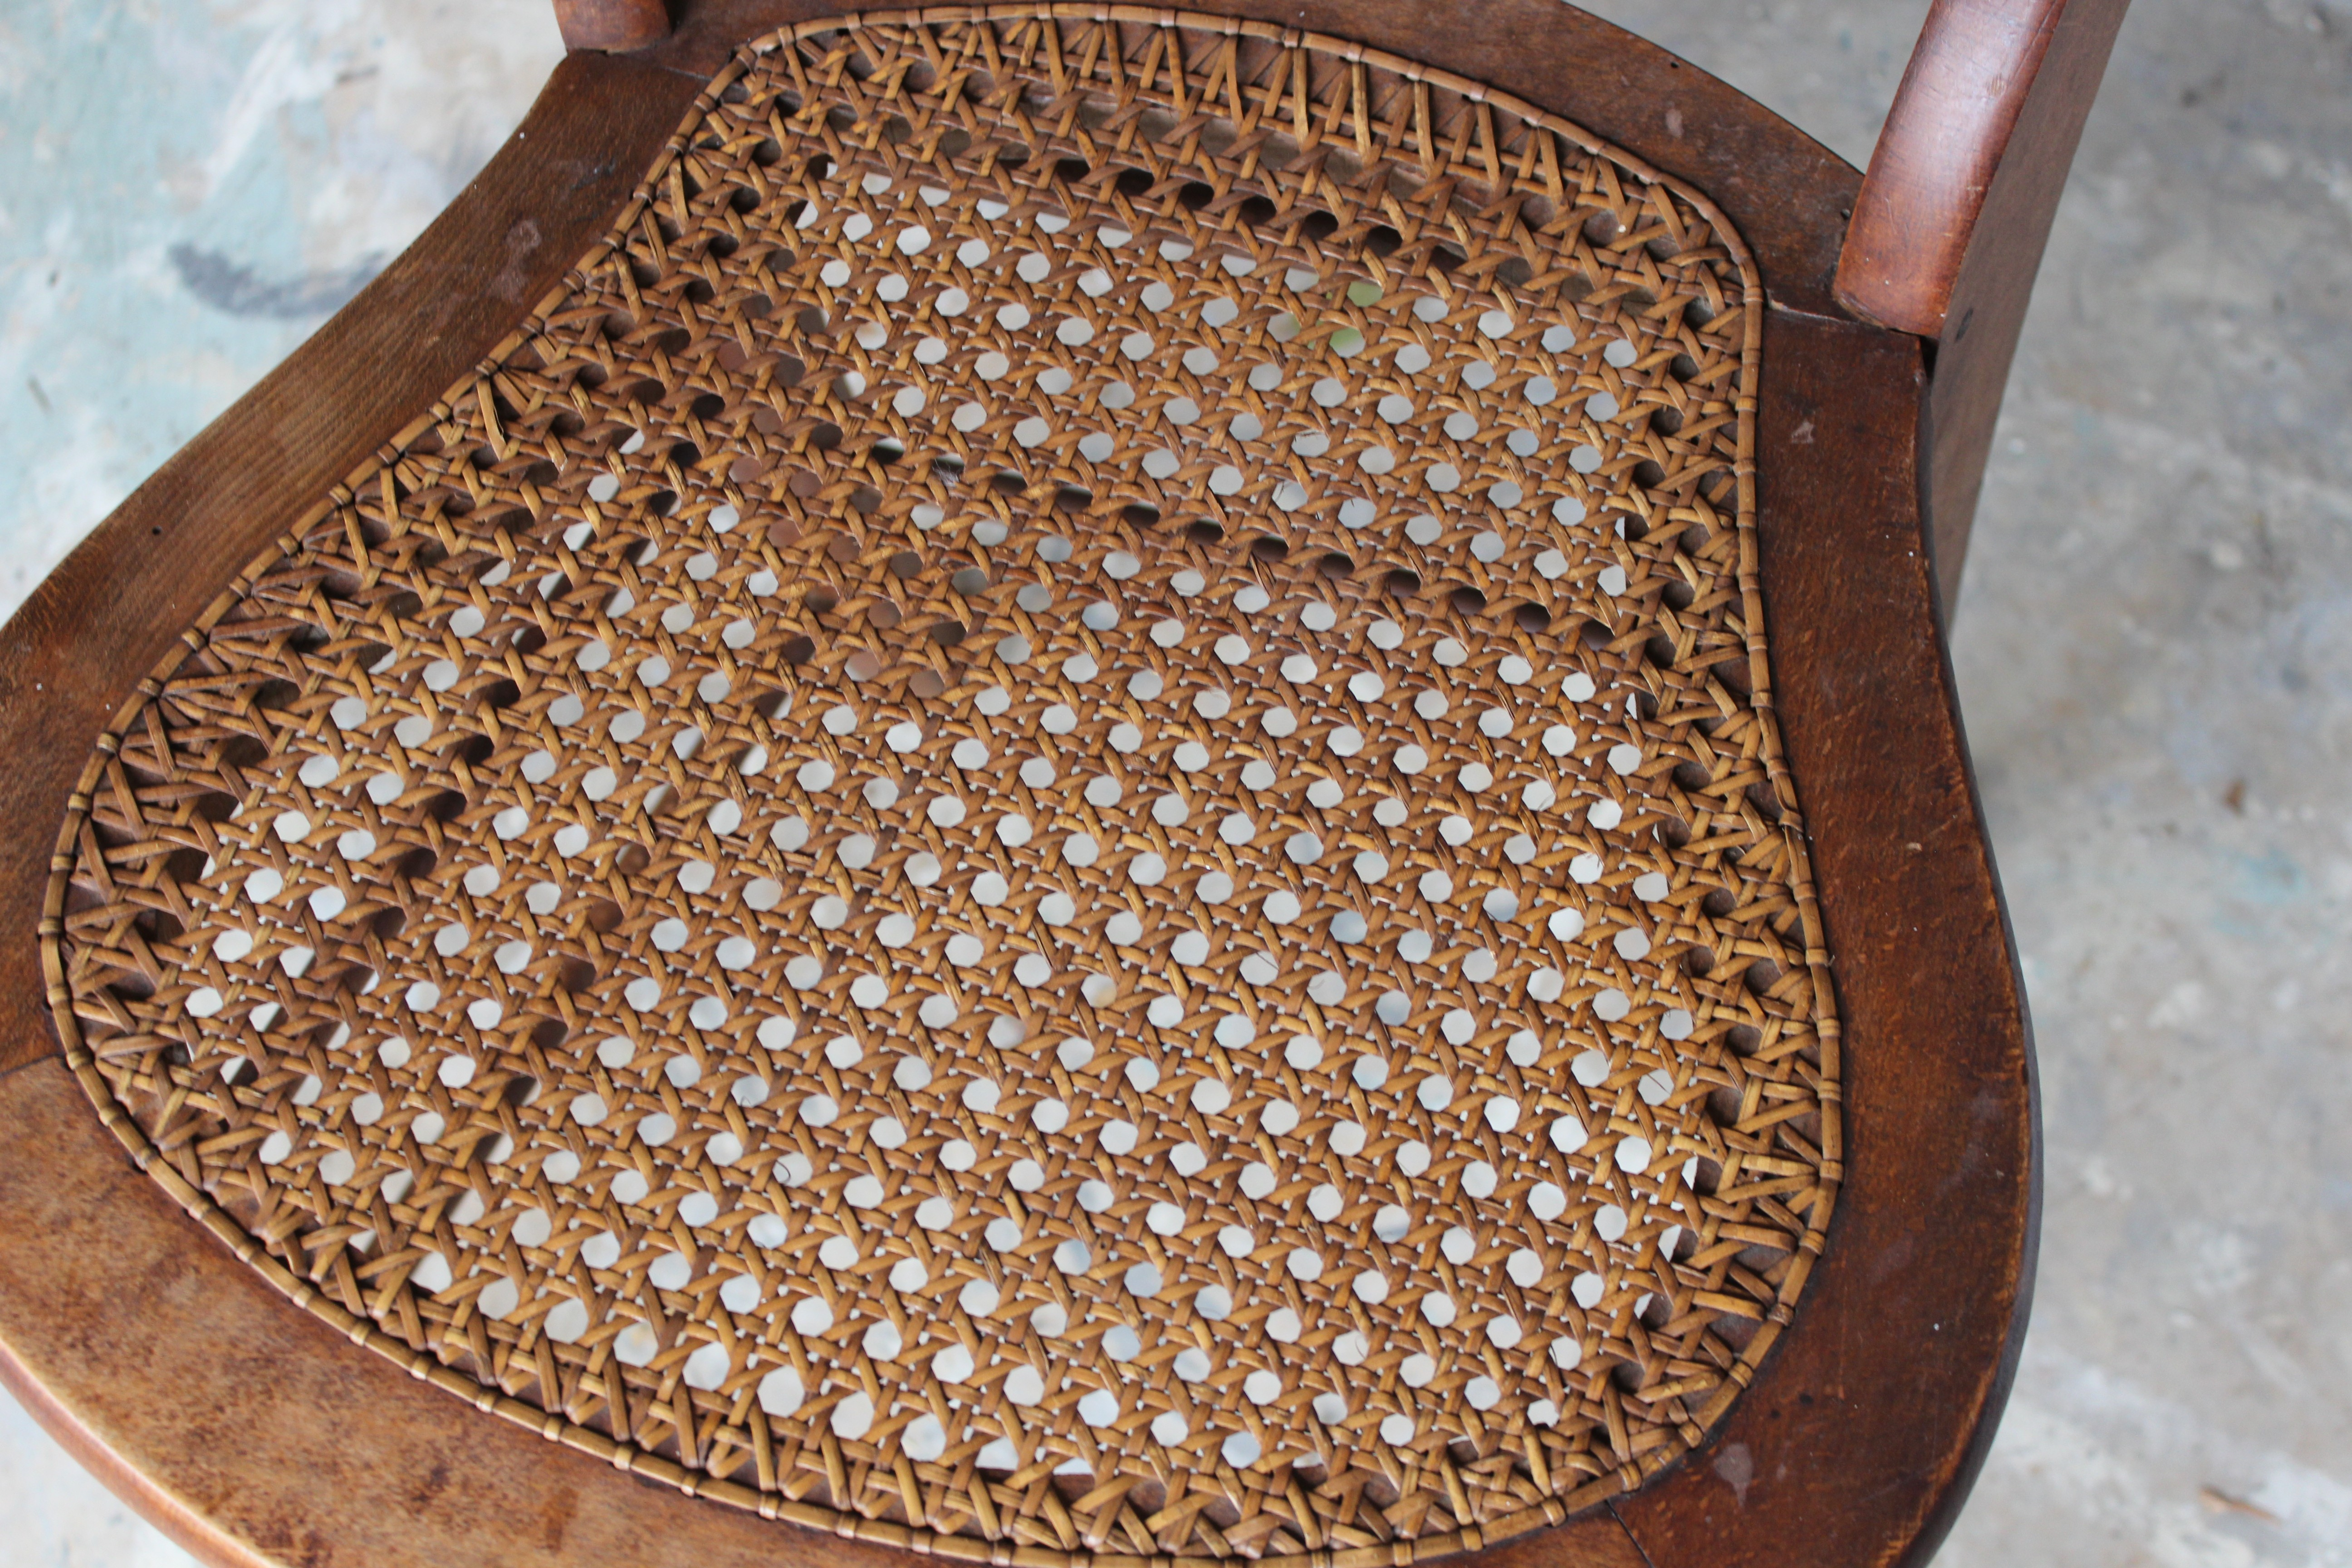 Bon When Painting Cane You Want To Use The Paint Sparingly So That It Does Not  Clump In The Basketweave. If This Happens It Is Very Difficult To Reverse  And May ...